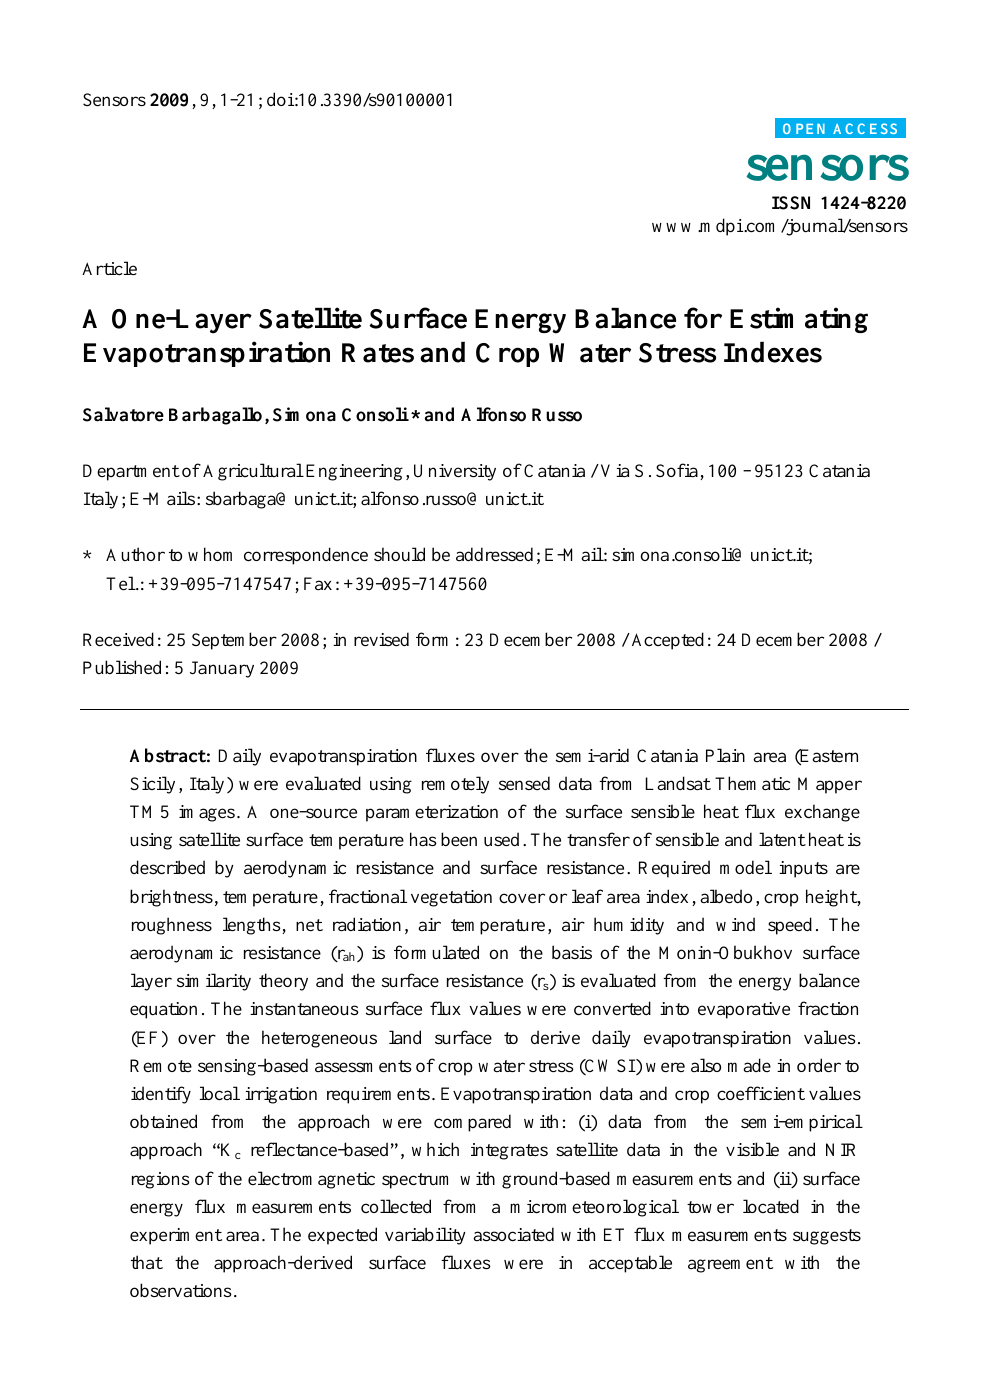 A One Layer Satellite Surface Energy Balance For Estimating Evapotranspiration Rates And Crop Water Stress Indexes Topic Of Research Paper In Earth And Related Environmental Sciences Download Scholarly Article Pdf And Read